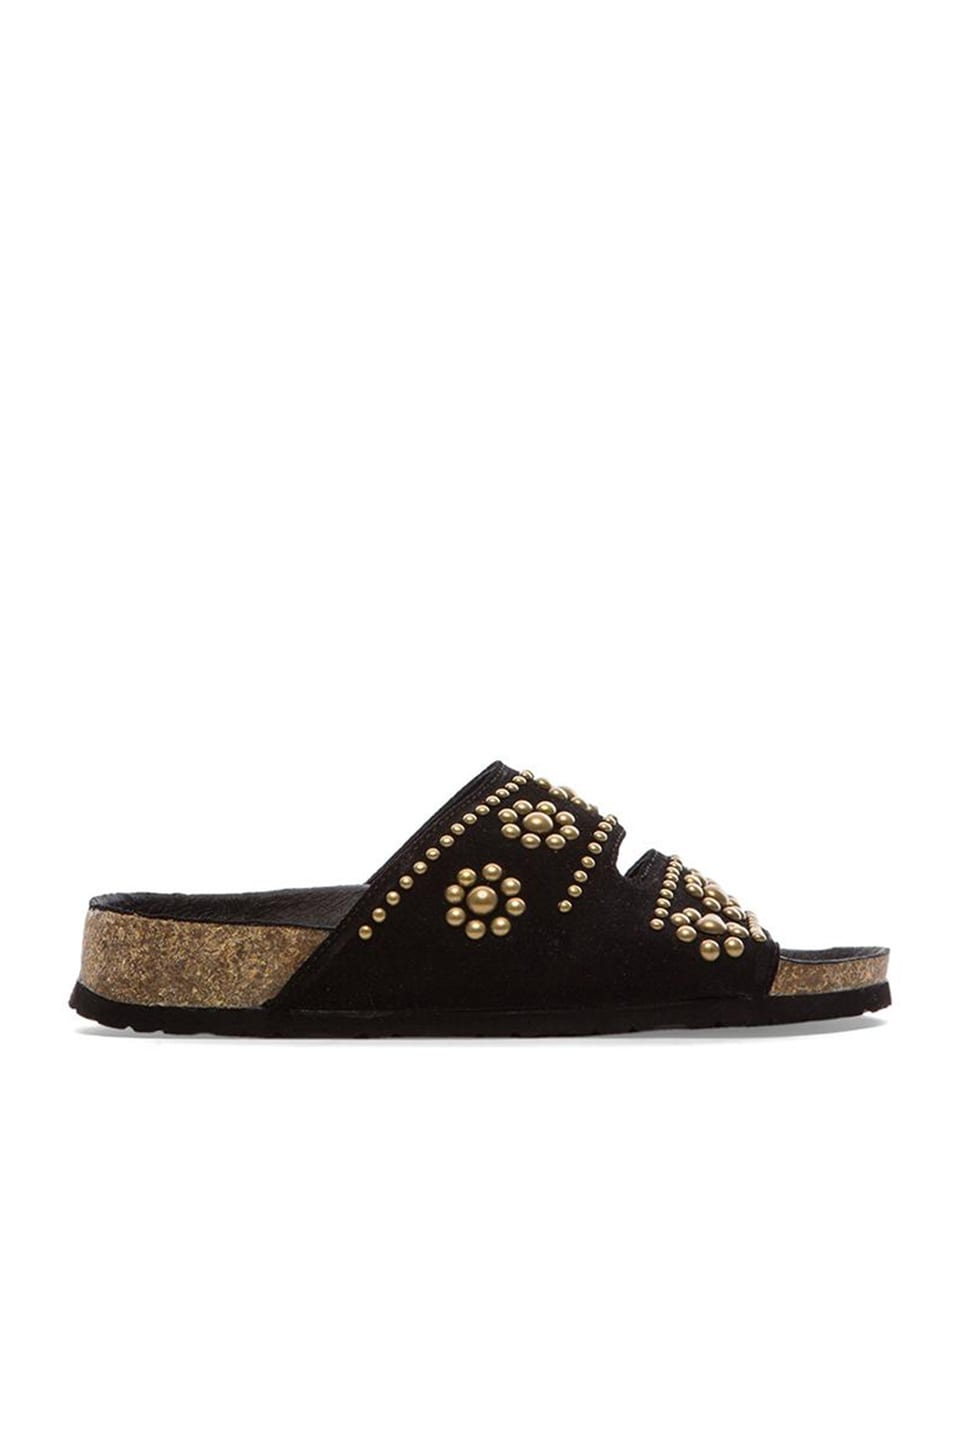 Jeffrey Campbell Lisbon Embellished Sandal in Black & Gold